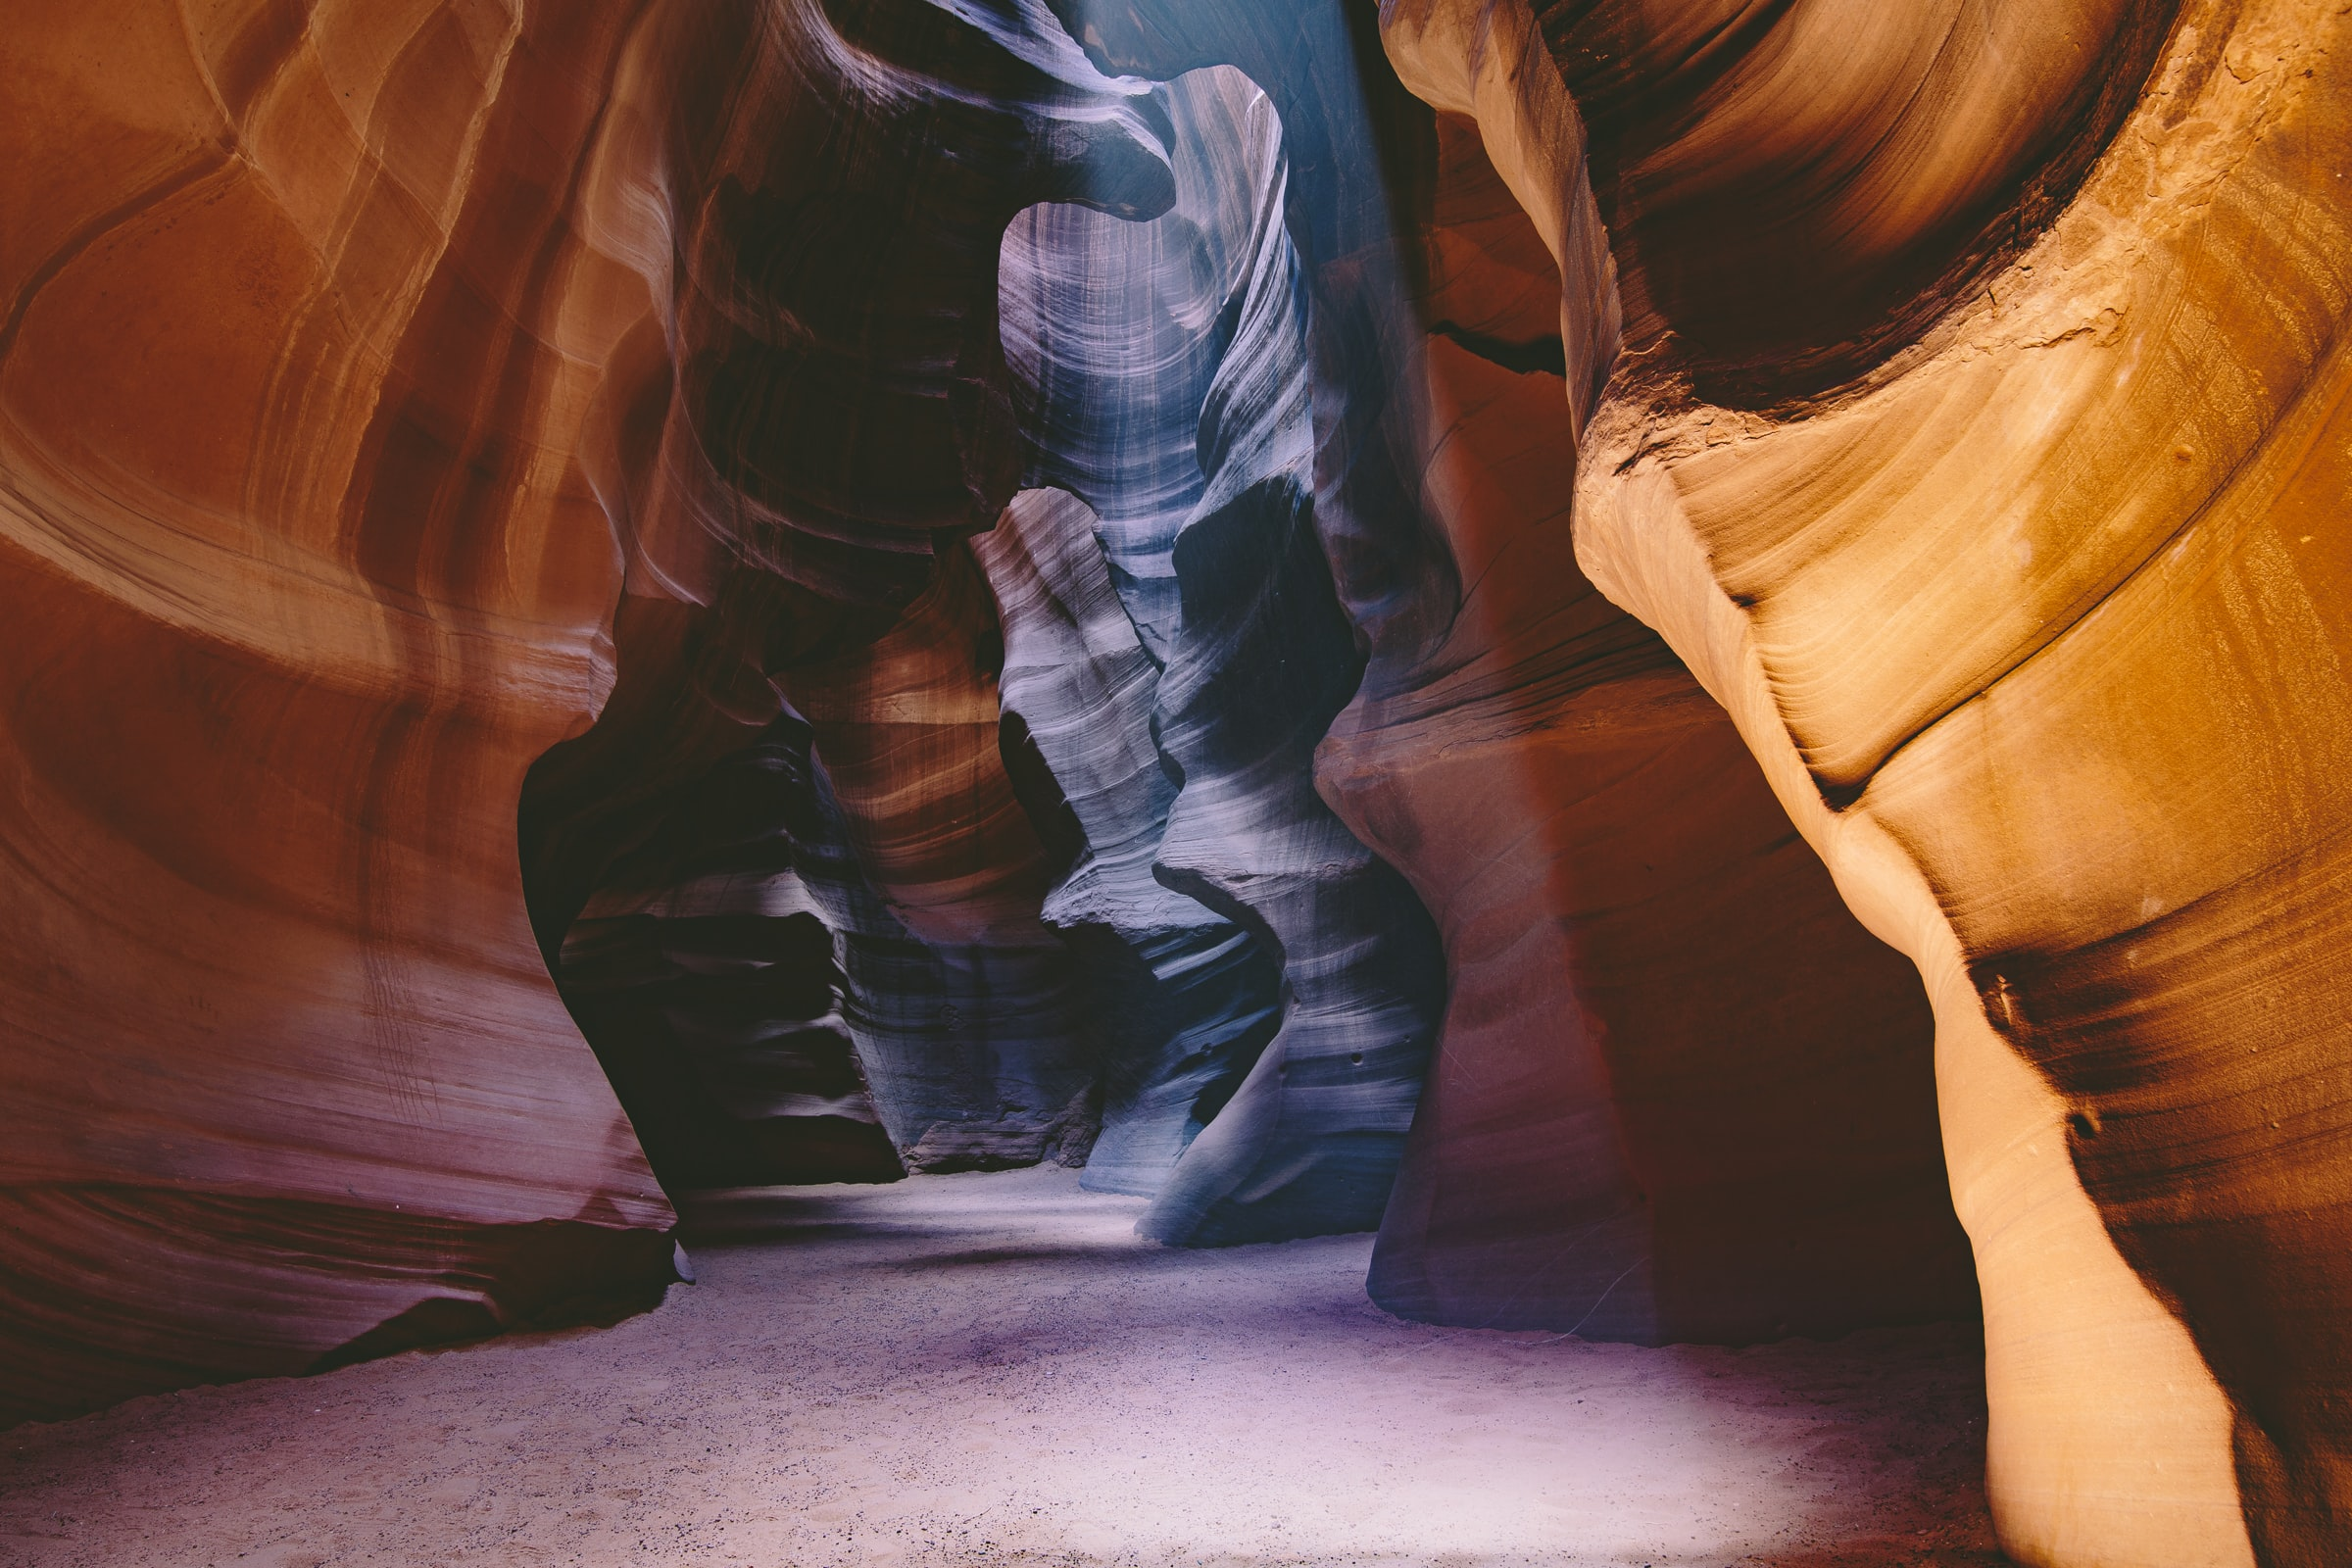 Sunlight shines inside Antelope Canyons casting shadows on the curved walls